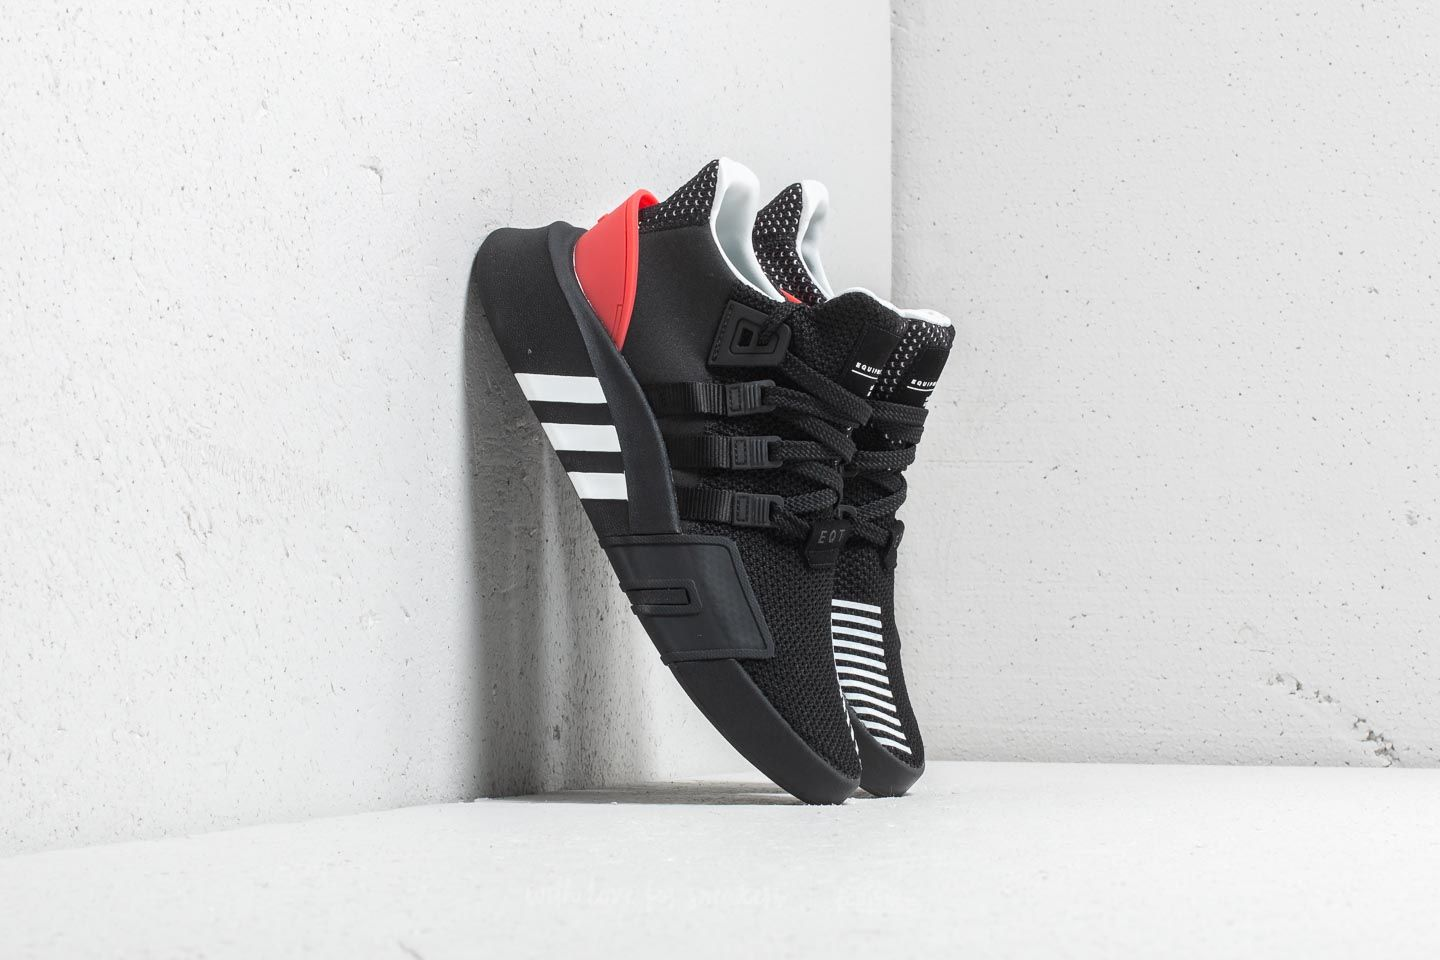 f421e06eef66 adidas EQT Bask ADV Core Black  Ftw White  Hi-Res Red